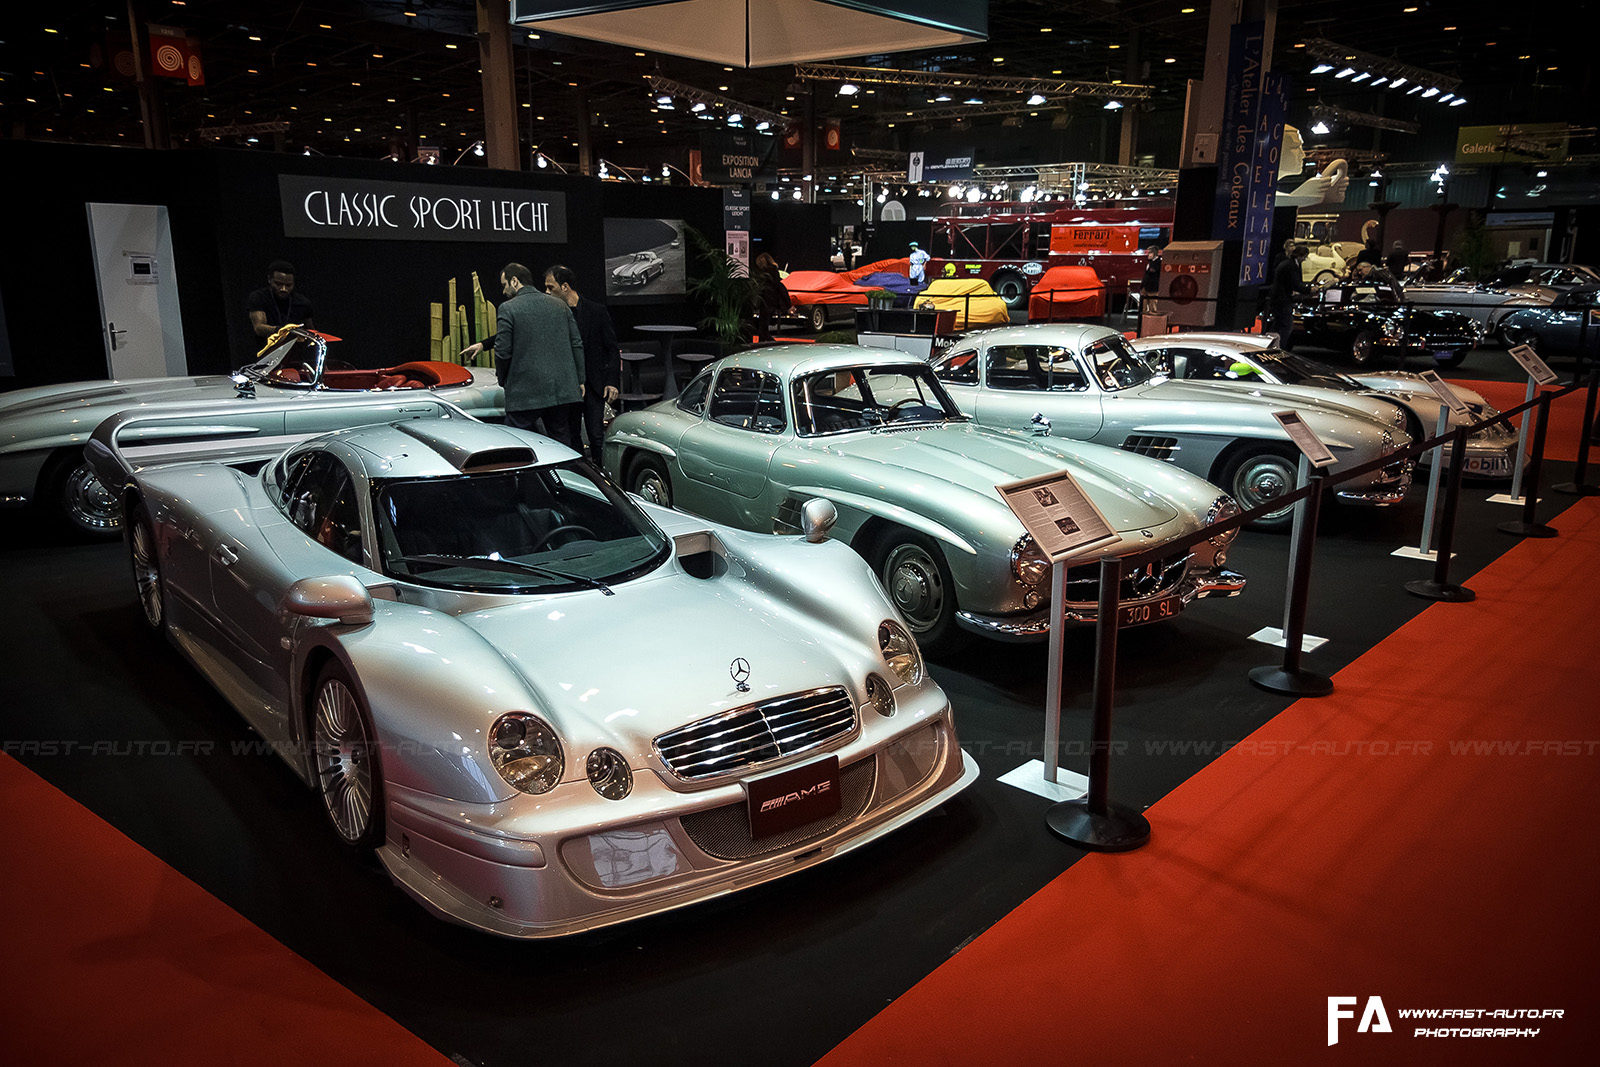 salon retromobile fevrier 2014 mercedes clk lm retromobile 2014 paris. Black Bedroom Furniture Sets. Home Design Ideas